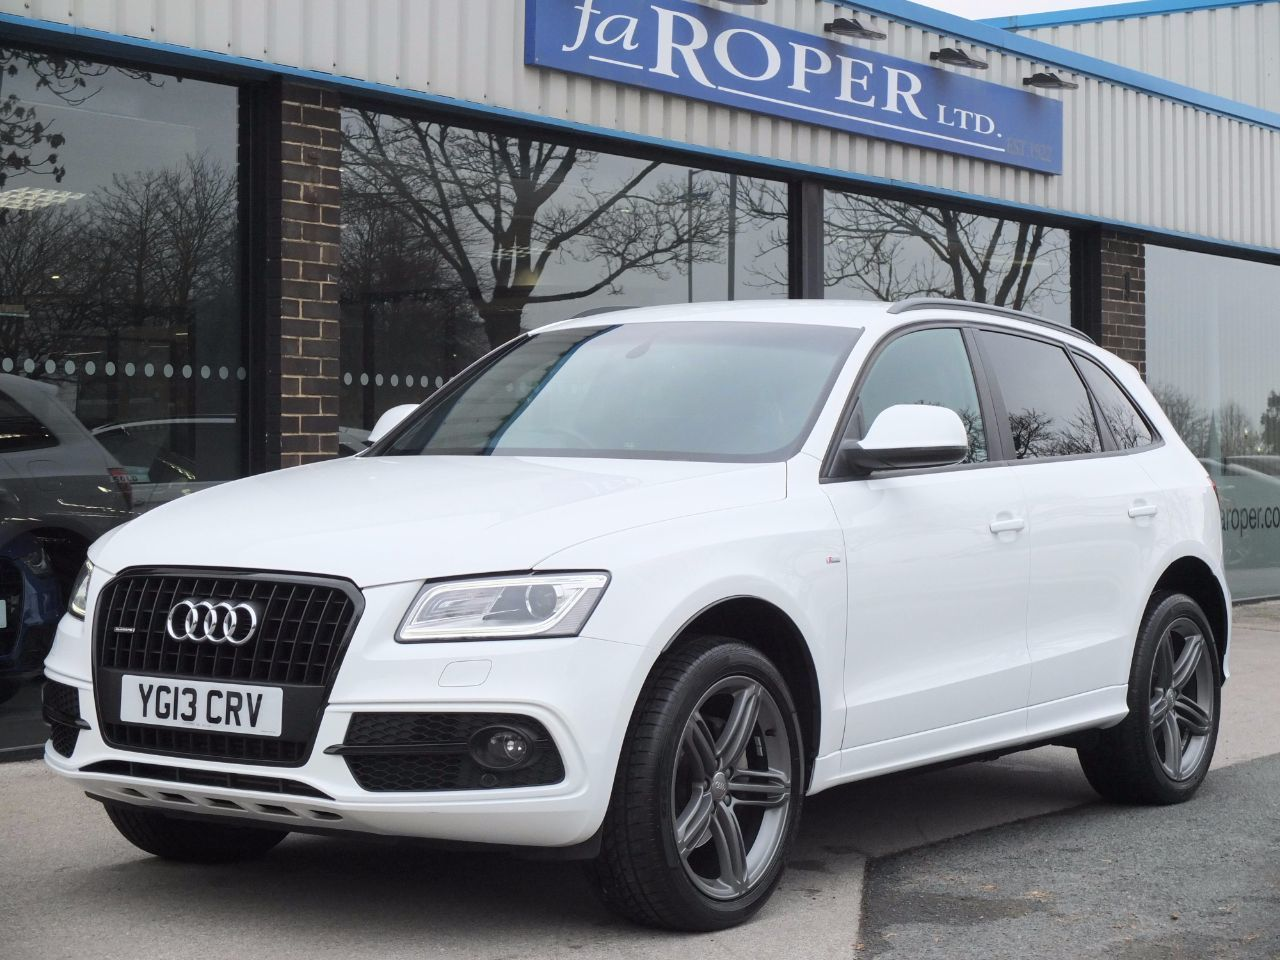 second hand audi q5 2 0 tdi quattro s line plus s tronic 177ps tech pack for sale in bradford. Black Bedroom Furniture Sets. Home Design Ideas